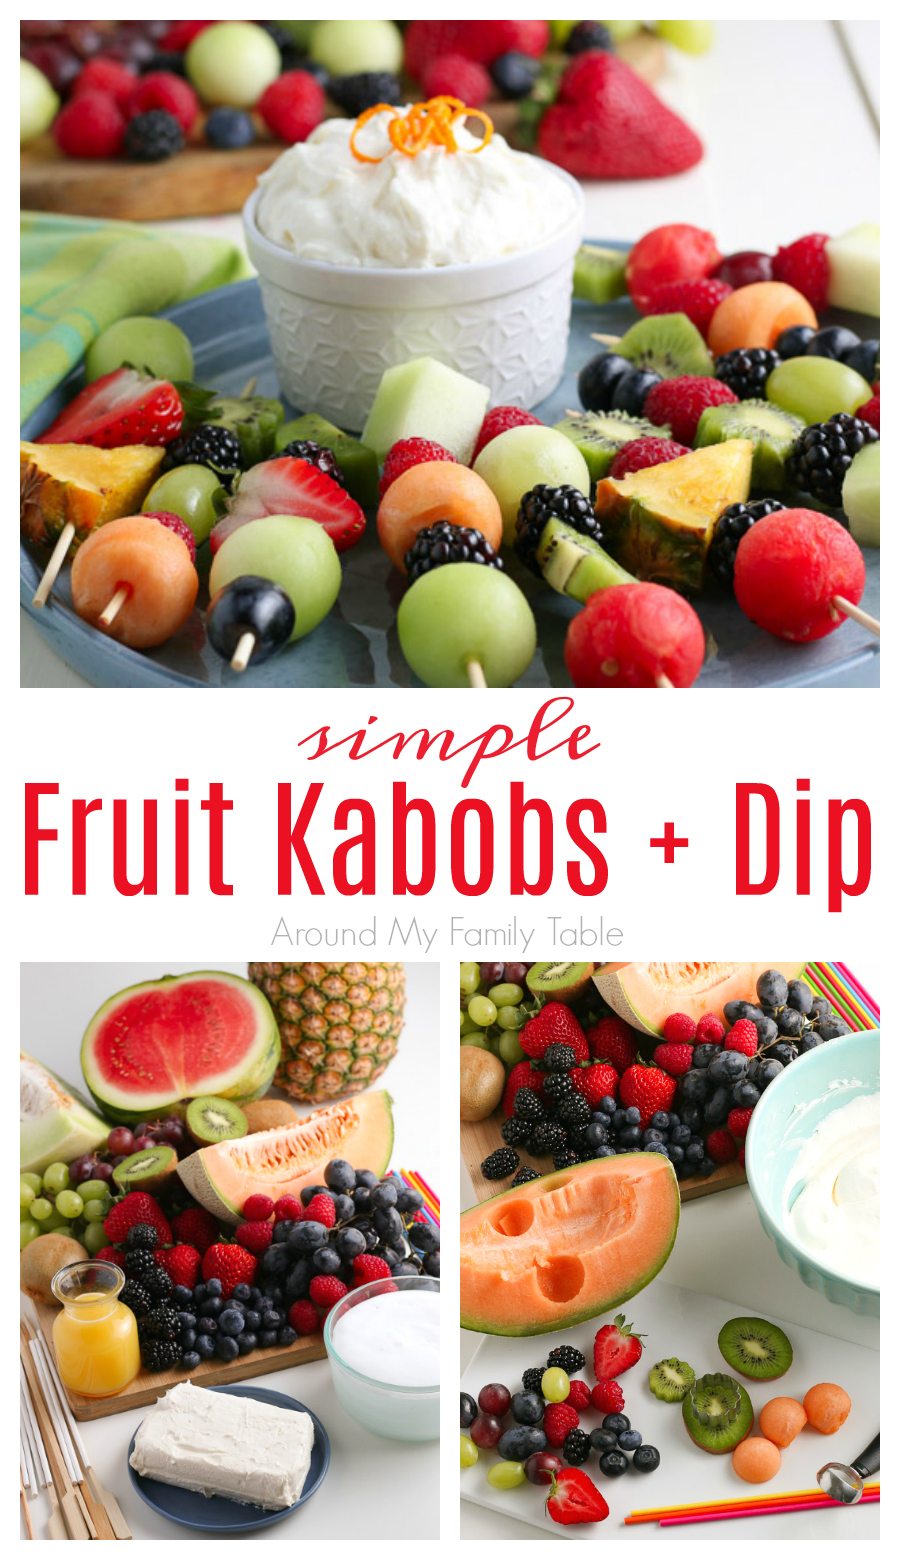 This simple snack of Fruit Kabobs and fruit dip is such a fun and easy summer time (or anytime treat). They are great for snacks, desserts, party appetizers, and more. via @slingmama